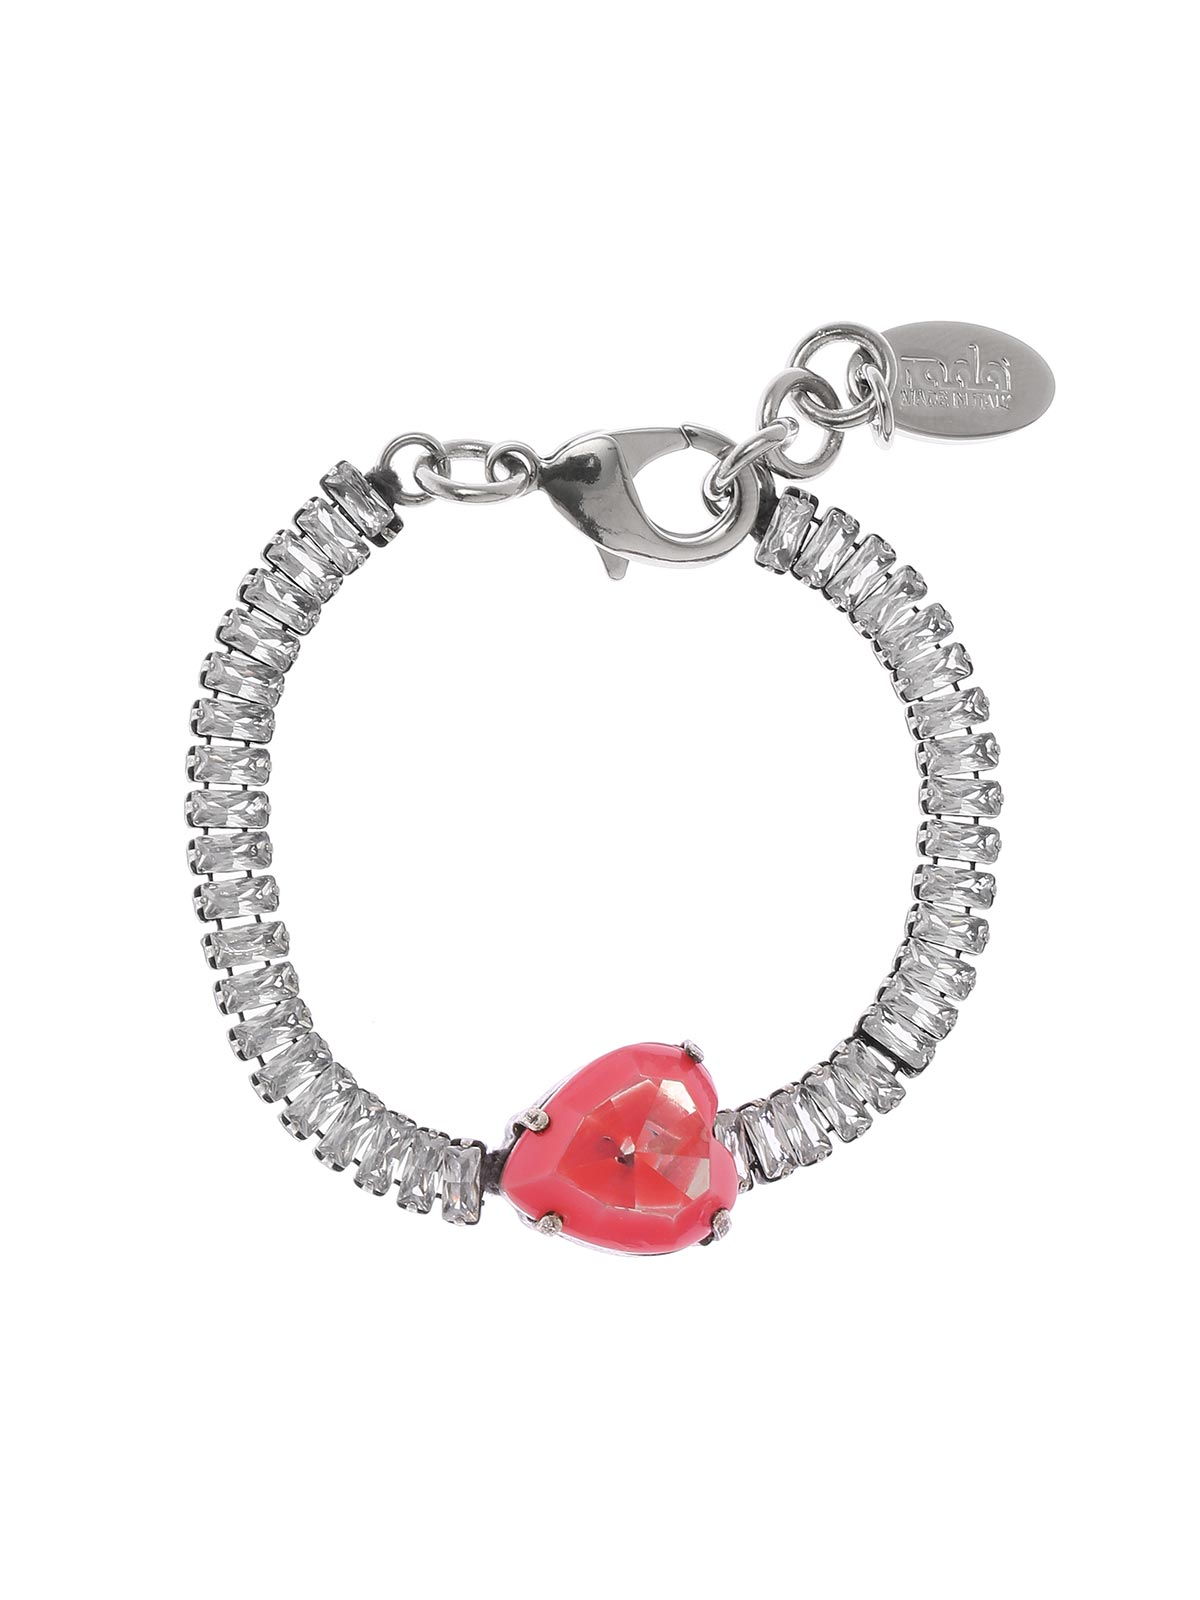 Painted heart bracelet